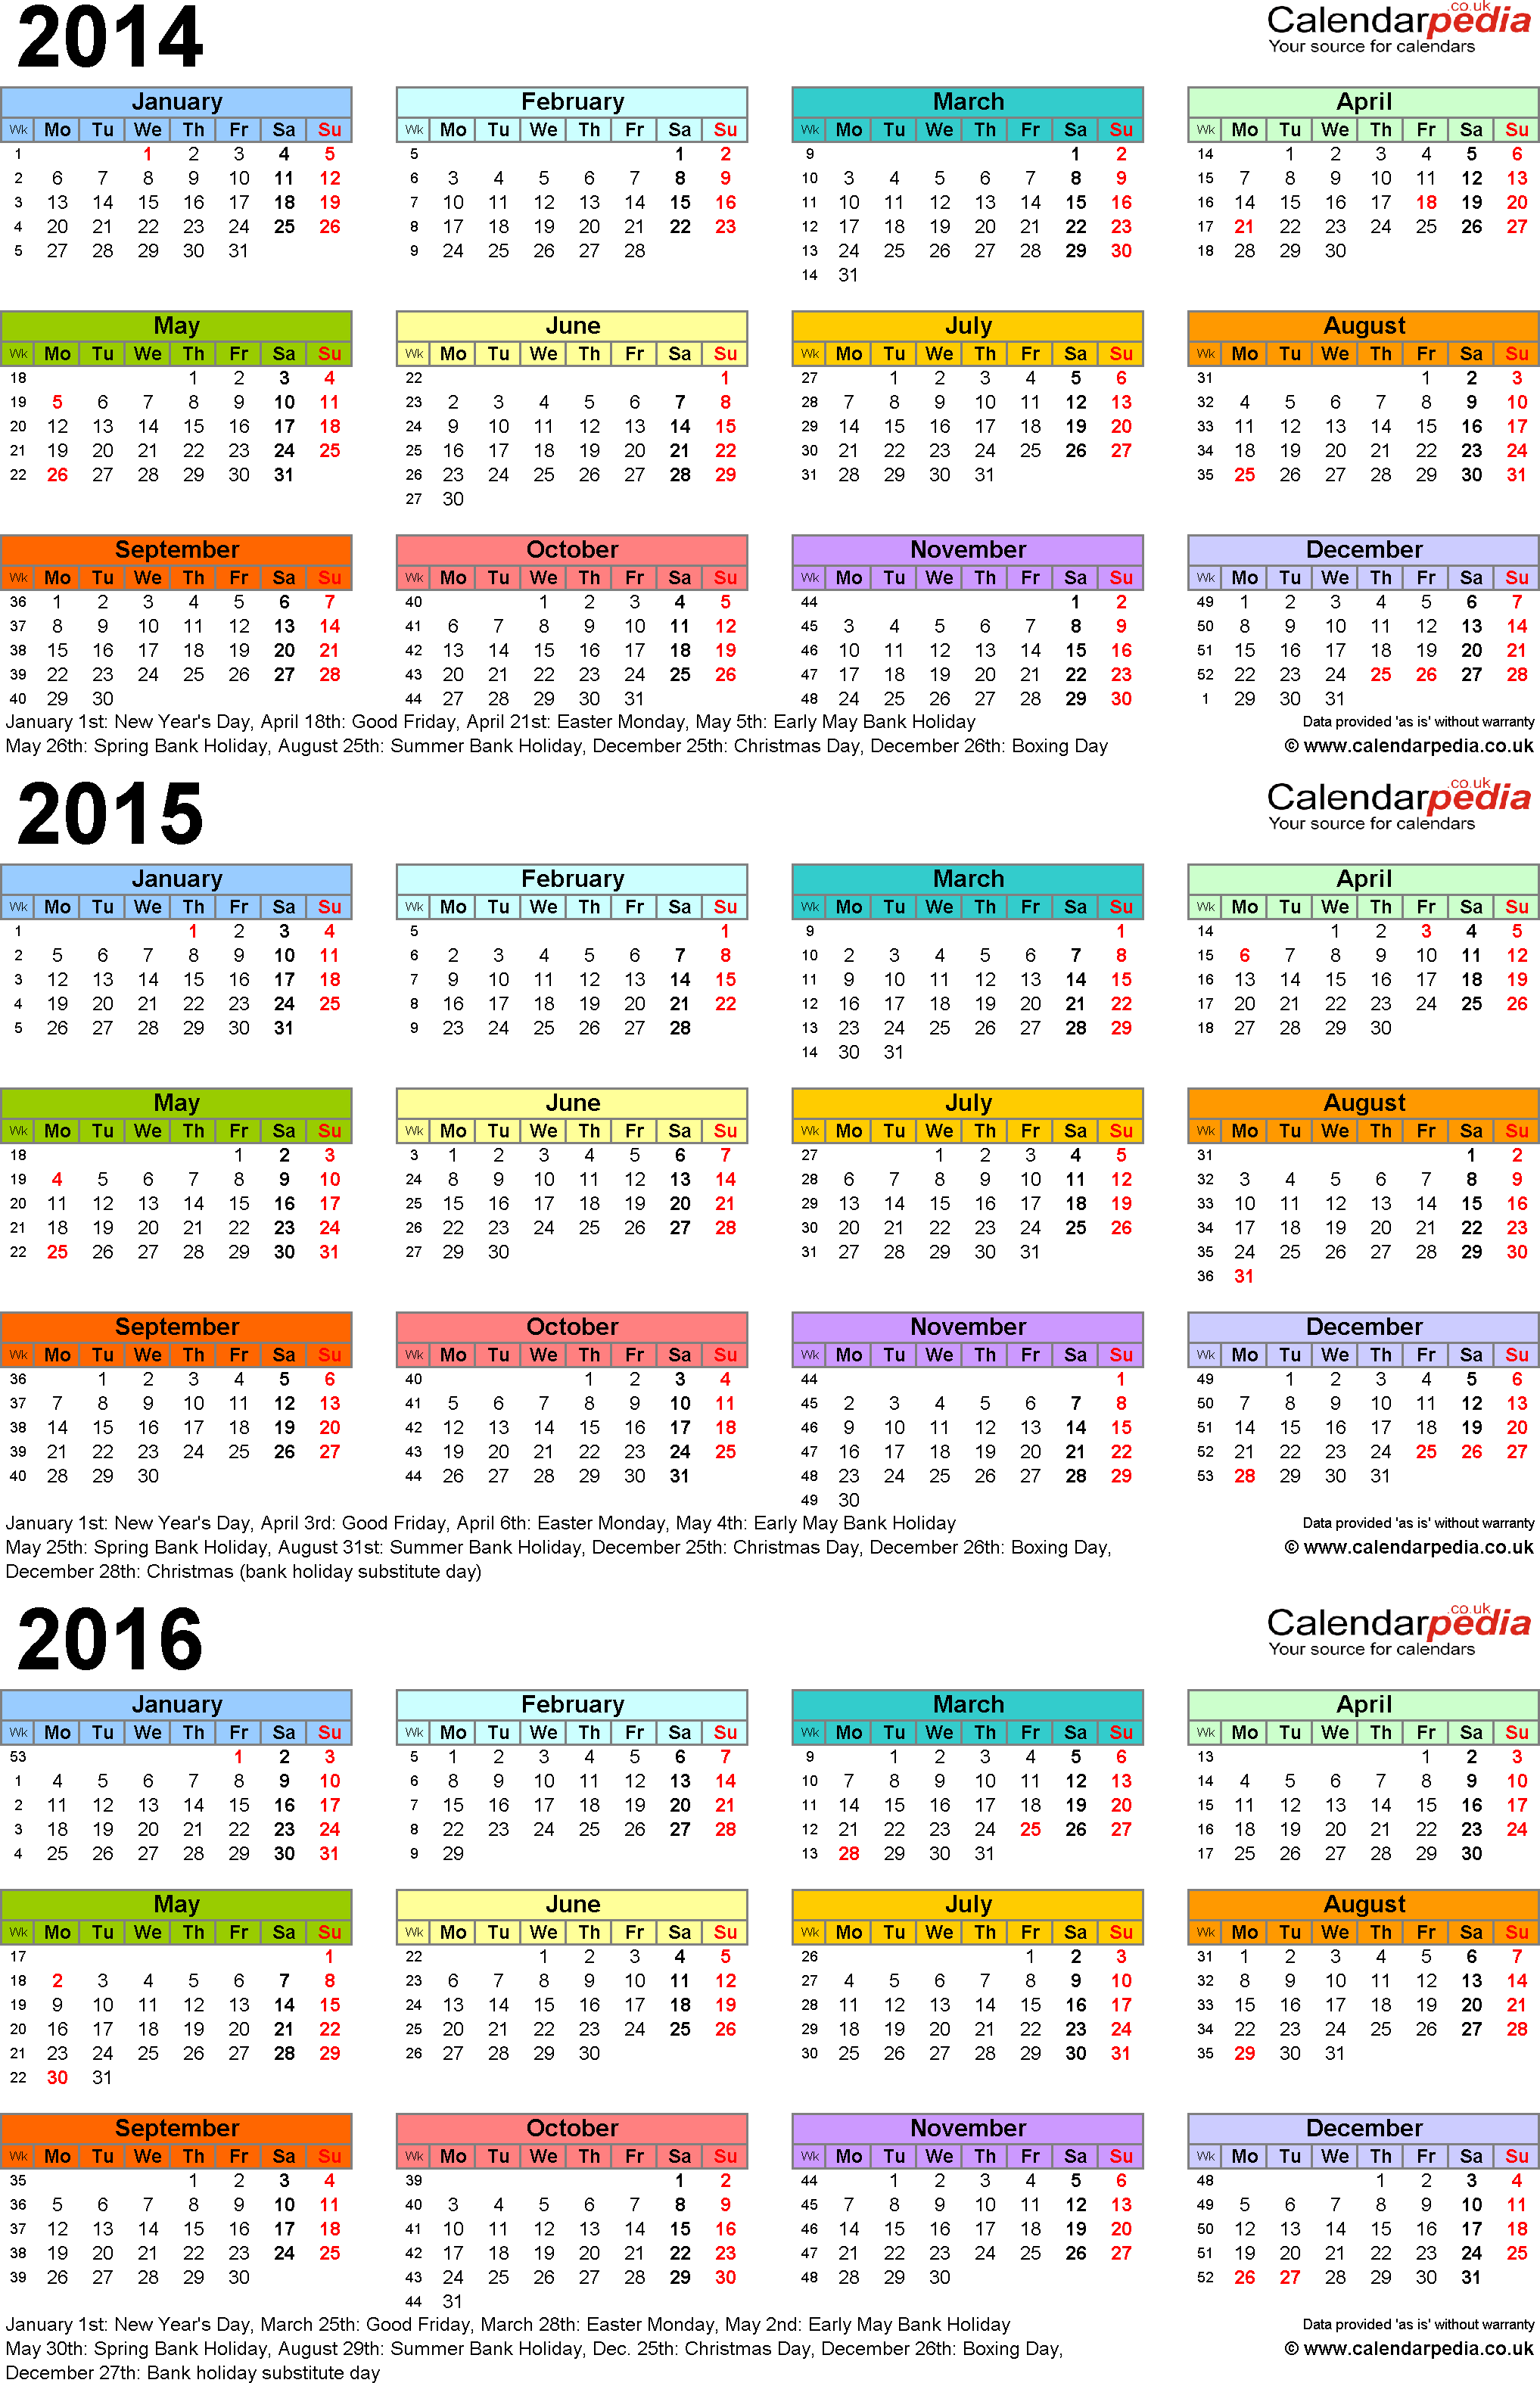 Download Template 3: Word template for three year calendar 2014-2016 in colour (portrait orientation, 1 page, A4)